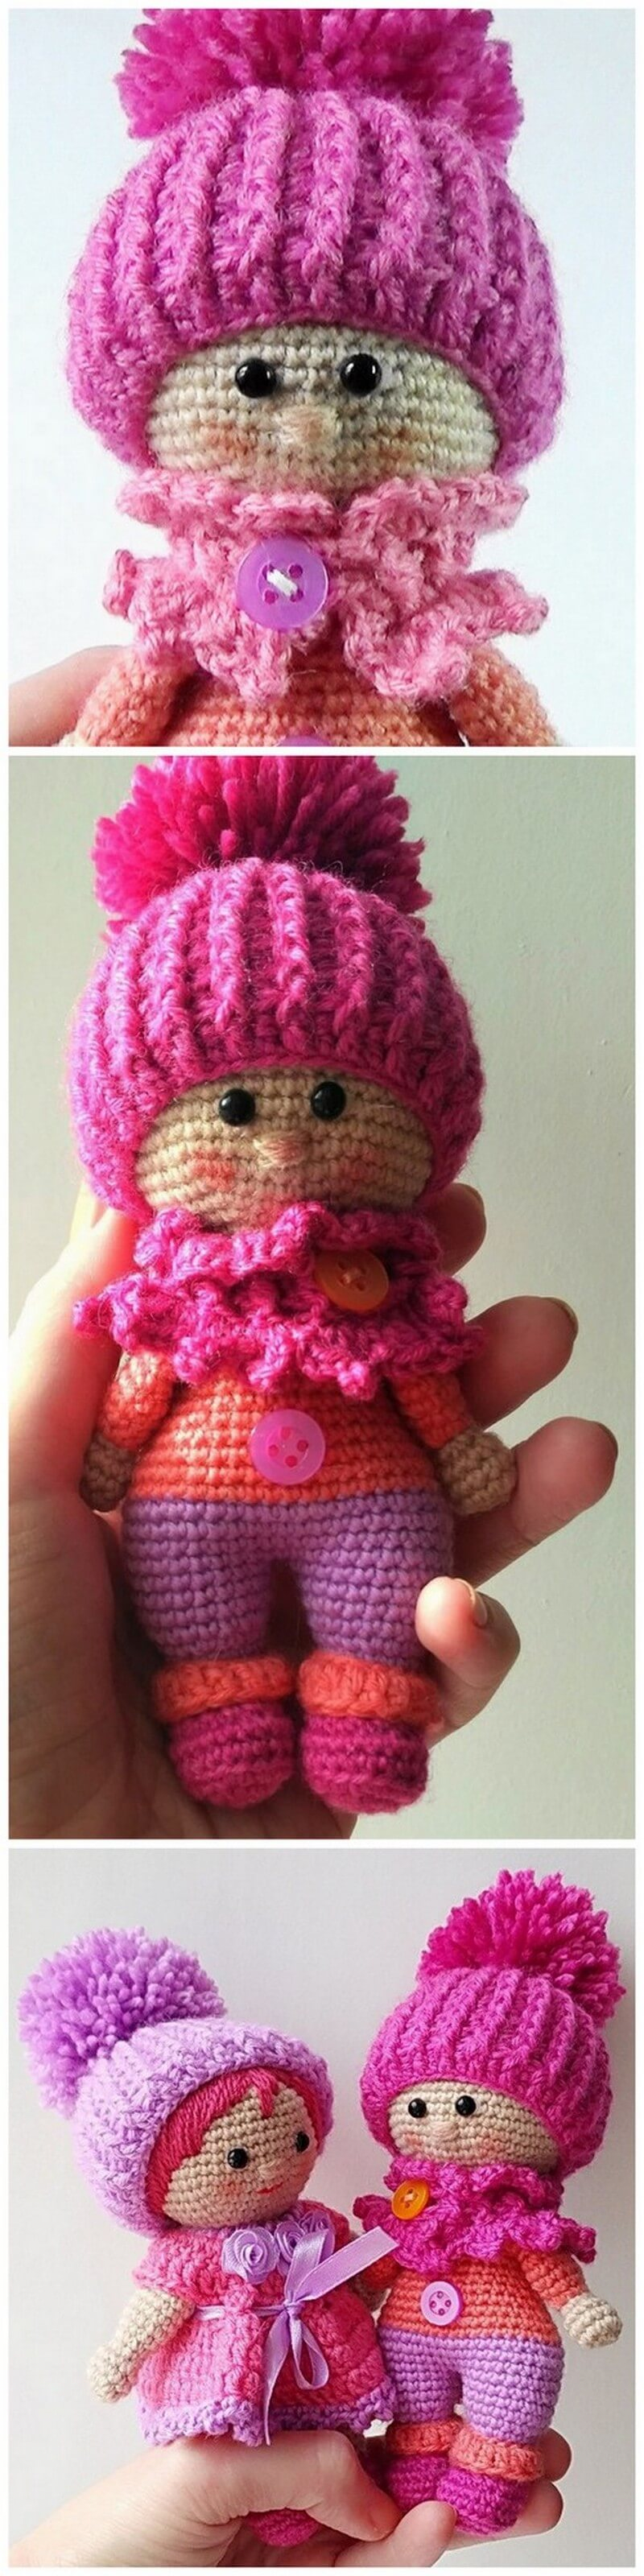 Crochet Amigurumi Doll Pattern (26)